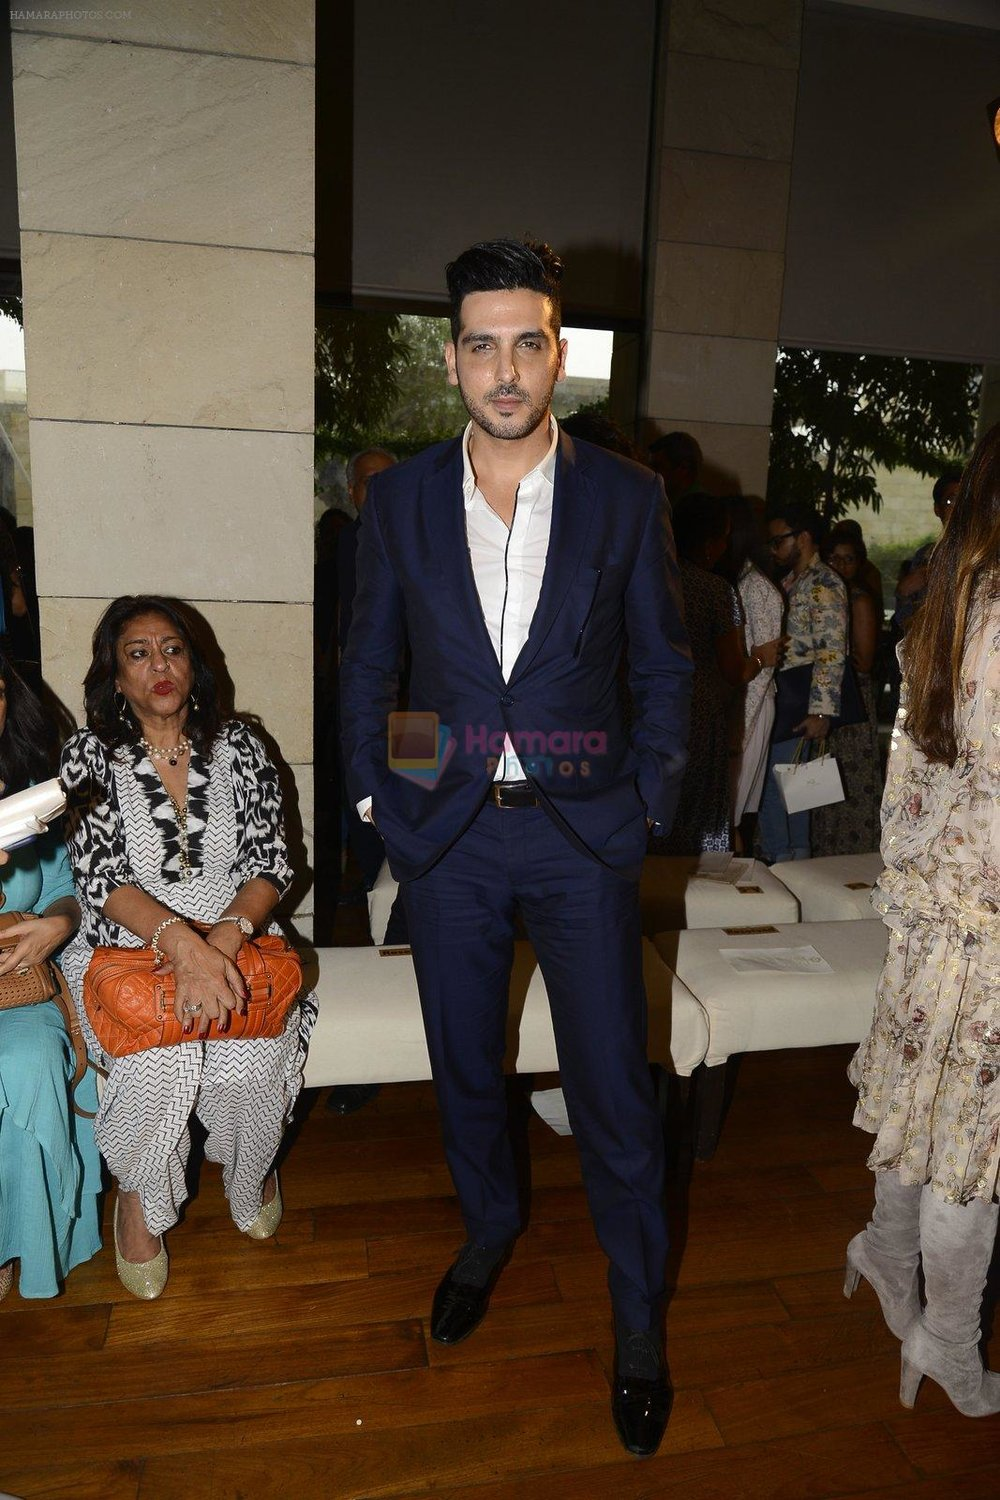 Zayed Khan during Manav Gangwani latest collection Begum-e-Jannat at the FDCI India Couture Week 2016 on 24 July 2016 shown to user